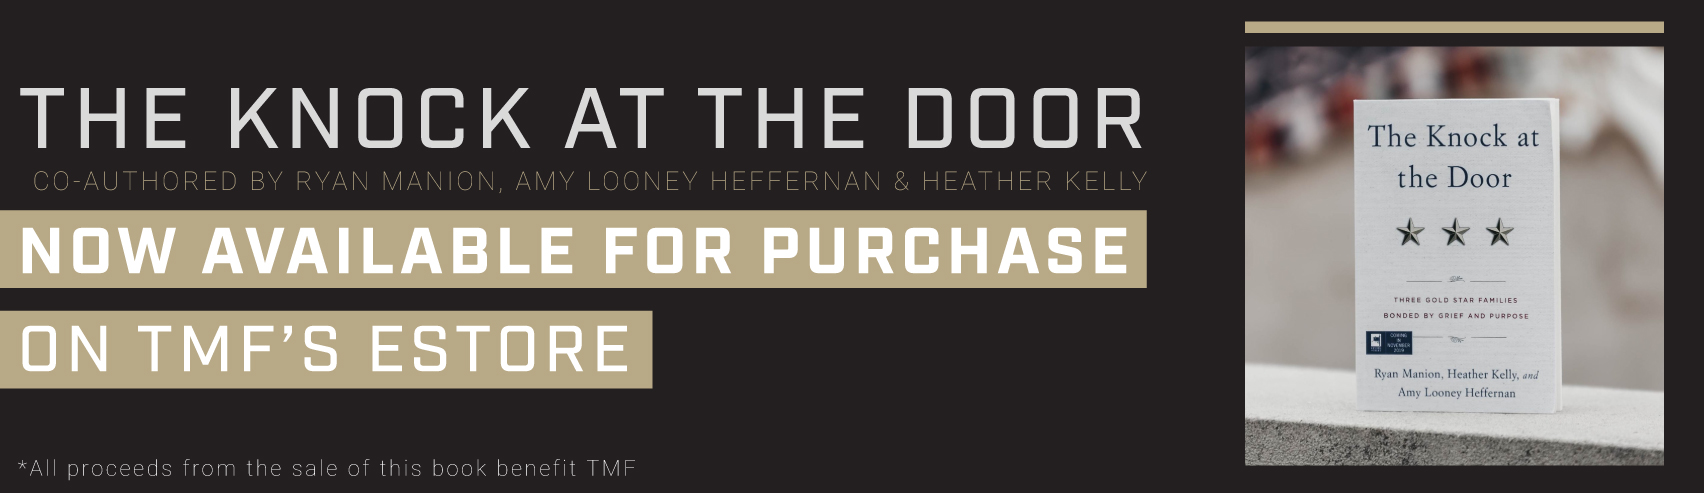 Purchase you copy of The Knock at the Door today!